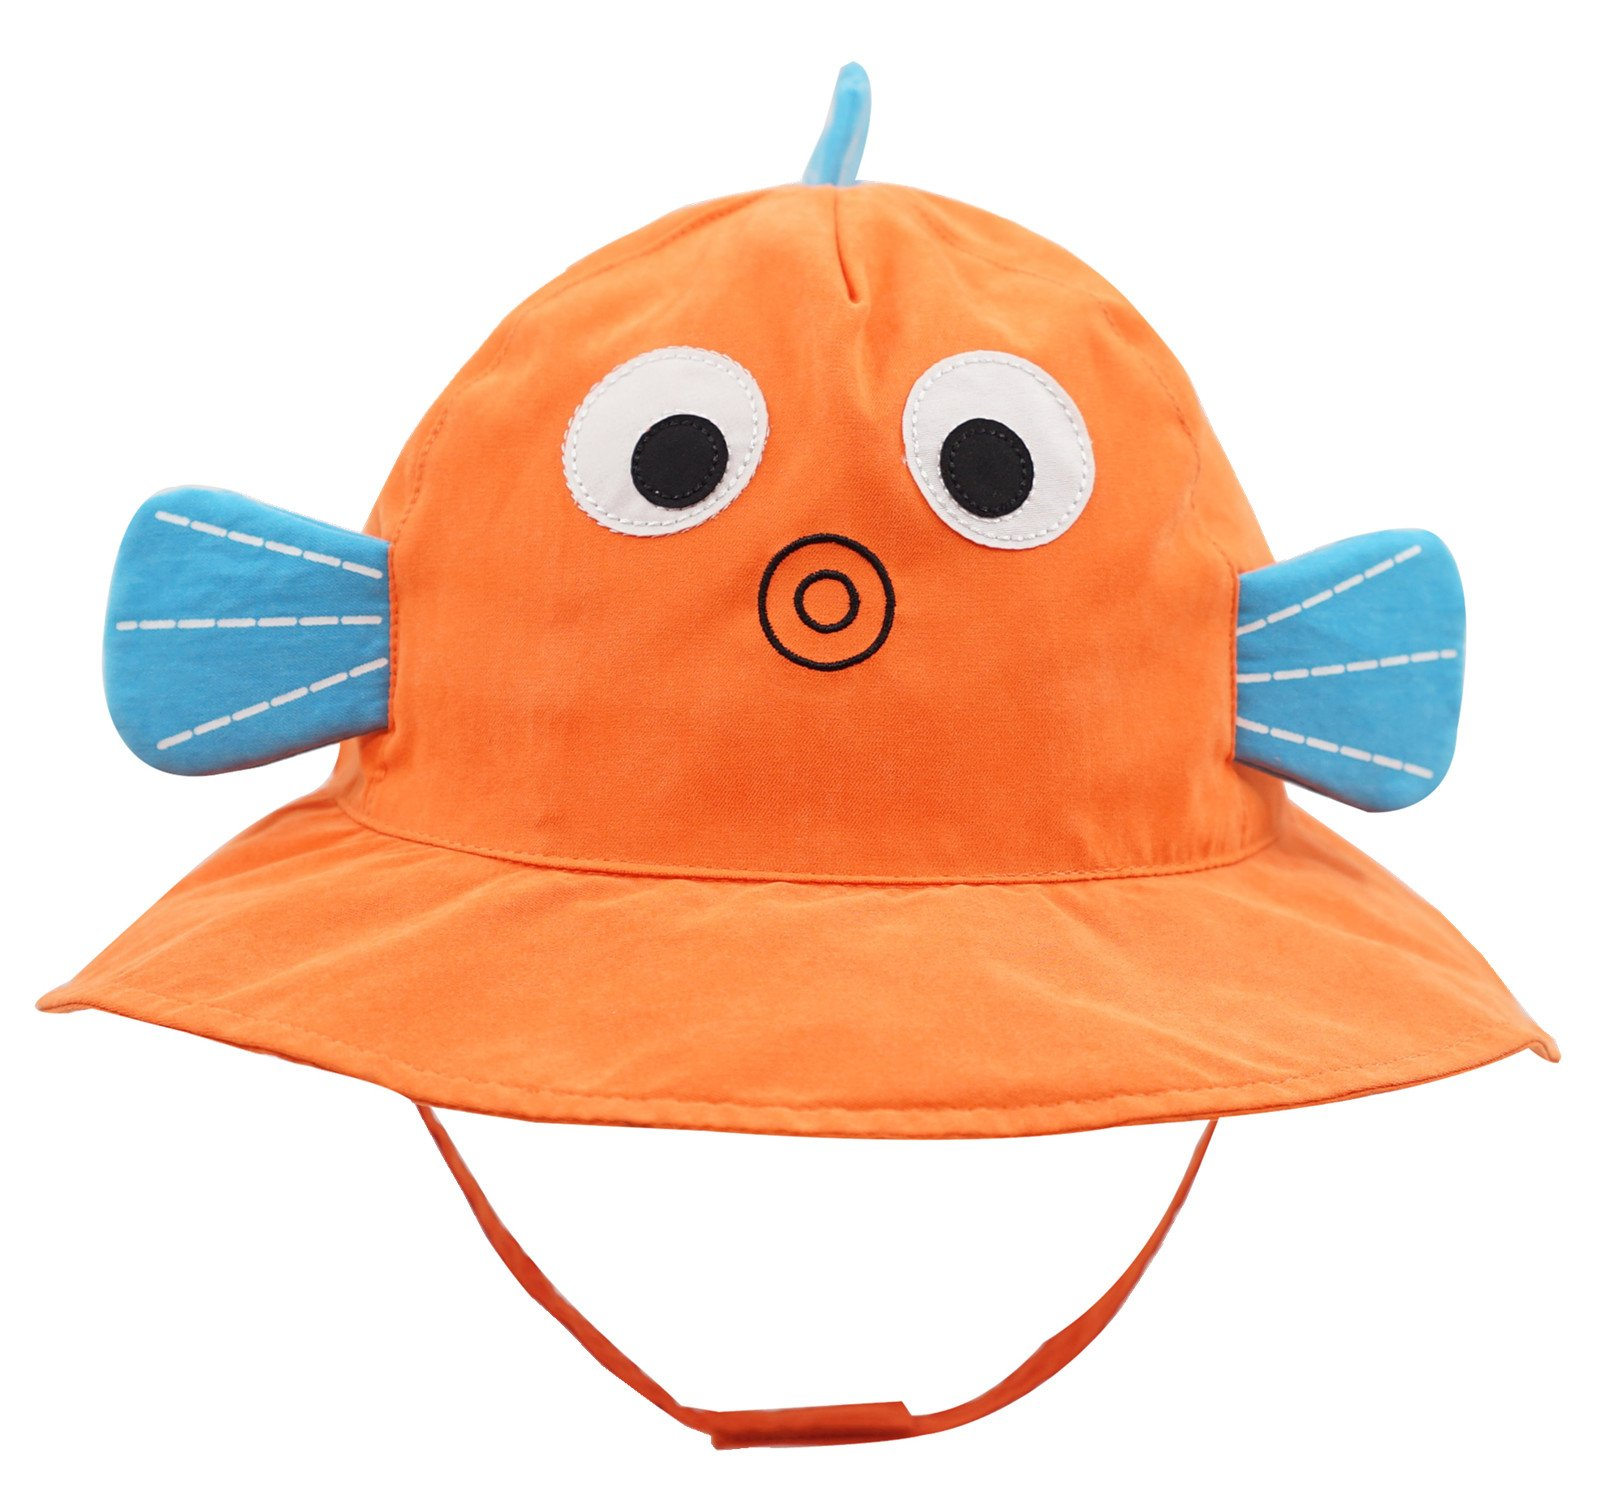 Connectyle Baby Infant Toddler Kids' UPF 50+ Sun Protection Hat Cute Cartoon Bucket Sun Hats by Connectyle (Image #1)